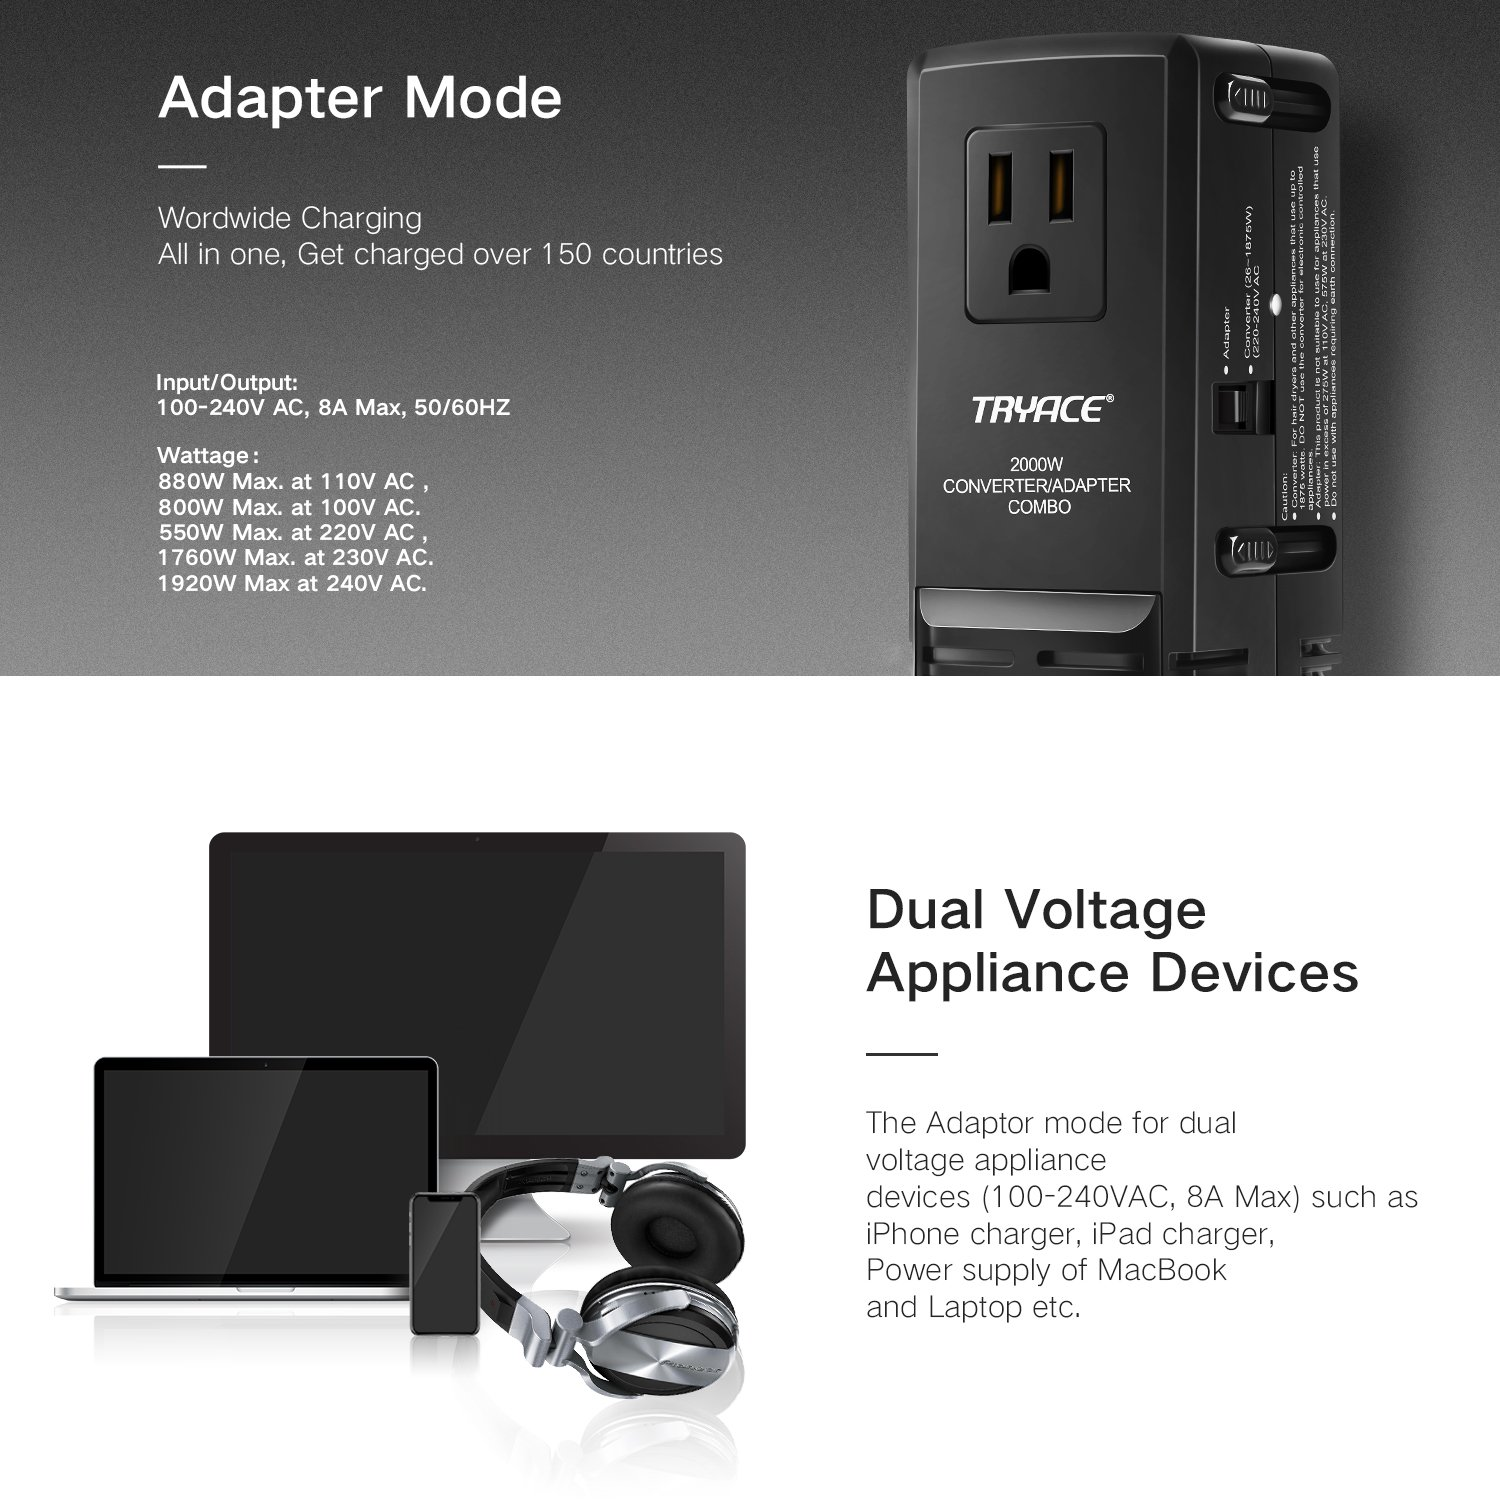 TryAce 2000W Worldwide Travel Converter and Adapter Set Down Voltage 240V to 110V Combo International Voltage Converter for Hair Dryer Phones Laptop All in One Plug Adapter Wall Charge for UK/AU/US/EU by TryAce (Image #3)